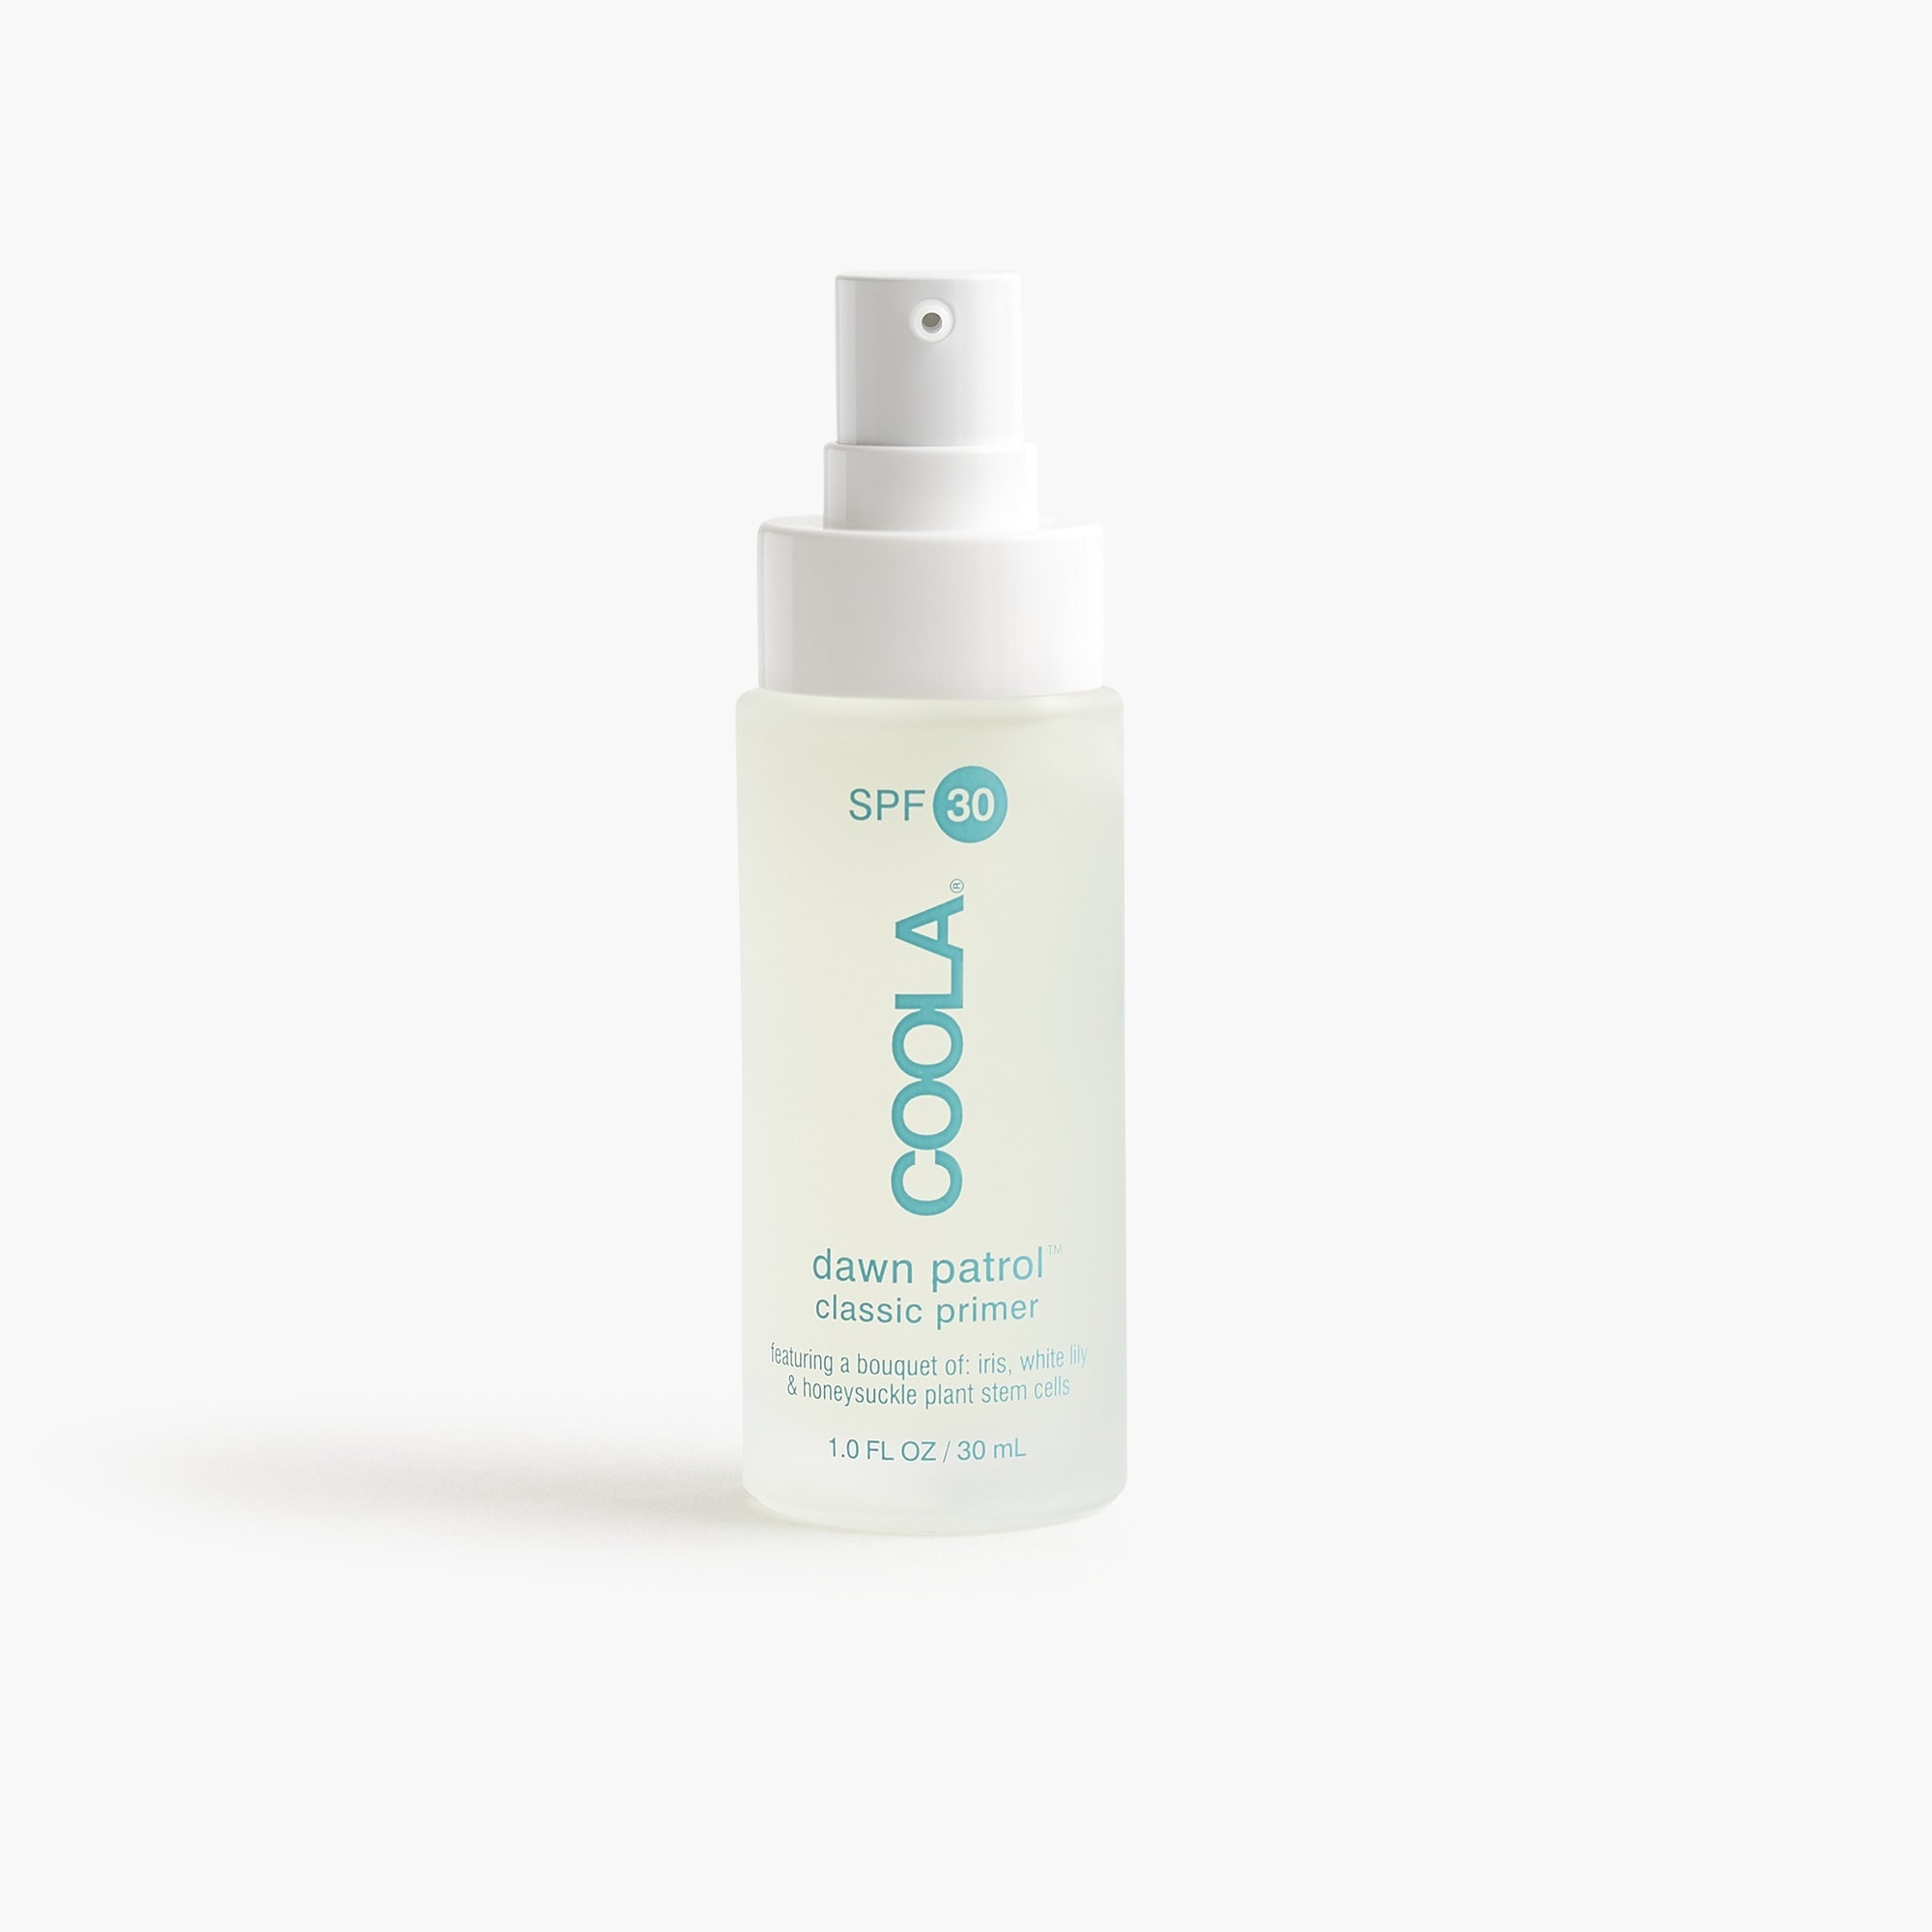 womens Coola® SPF 30 makeup primer